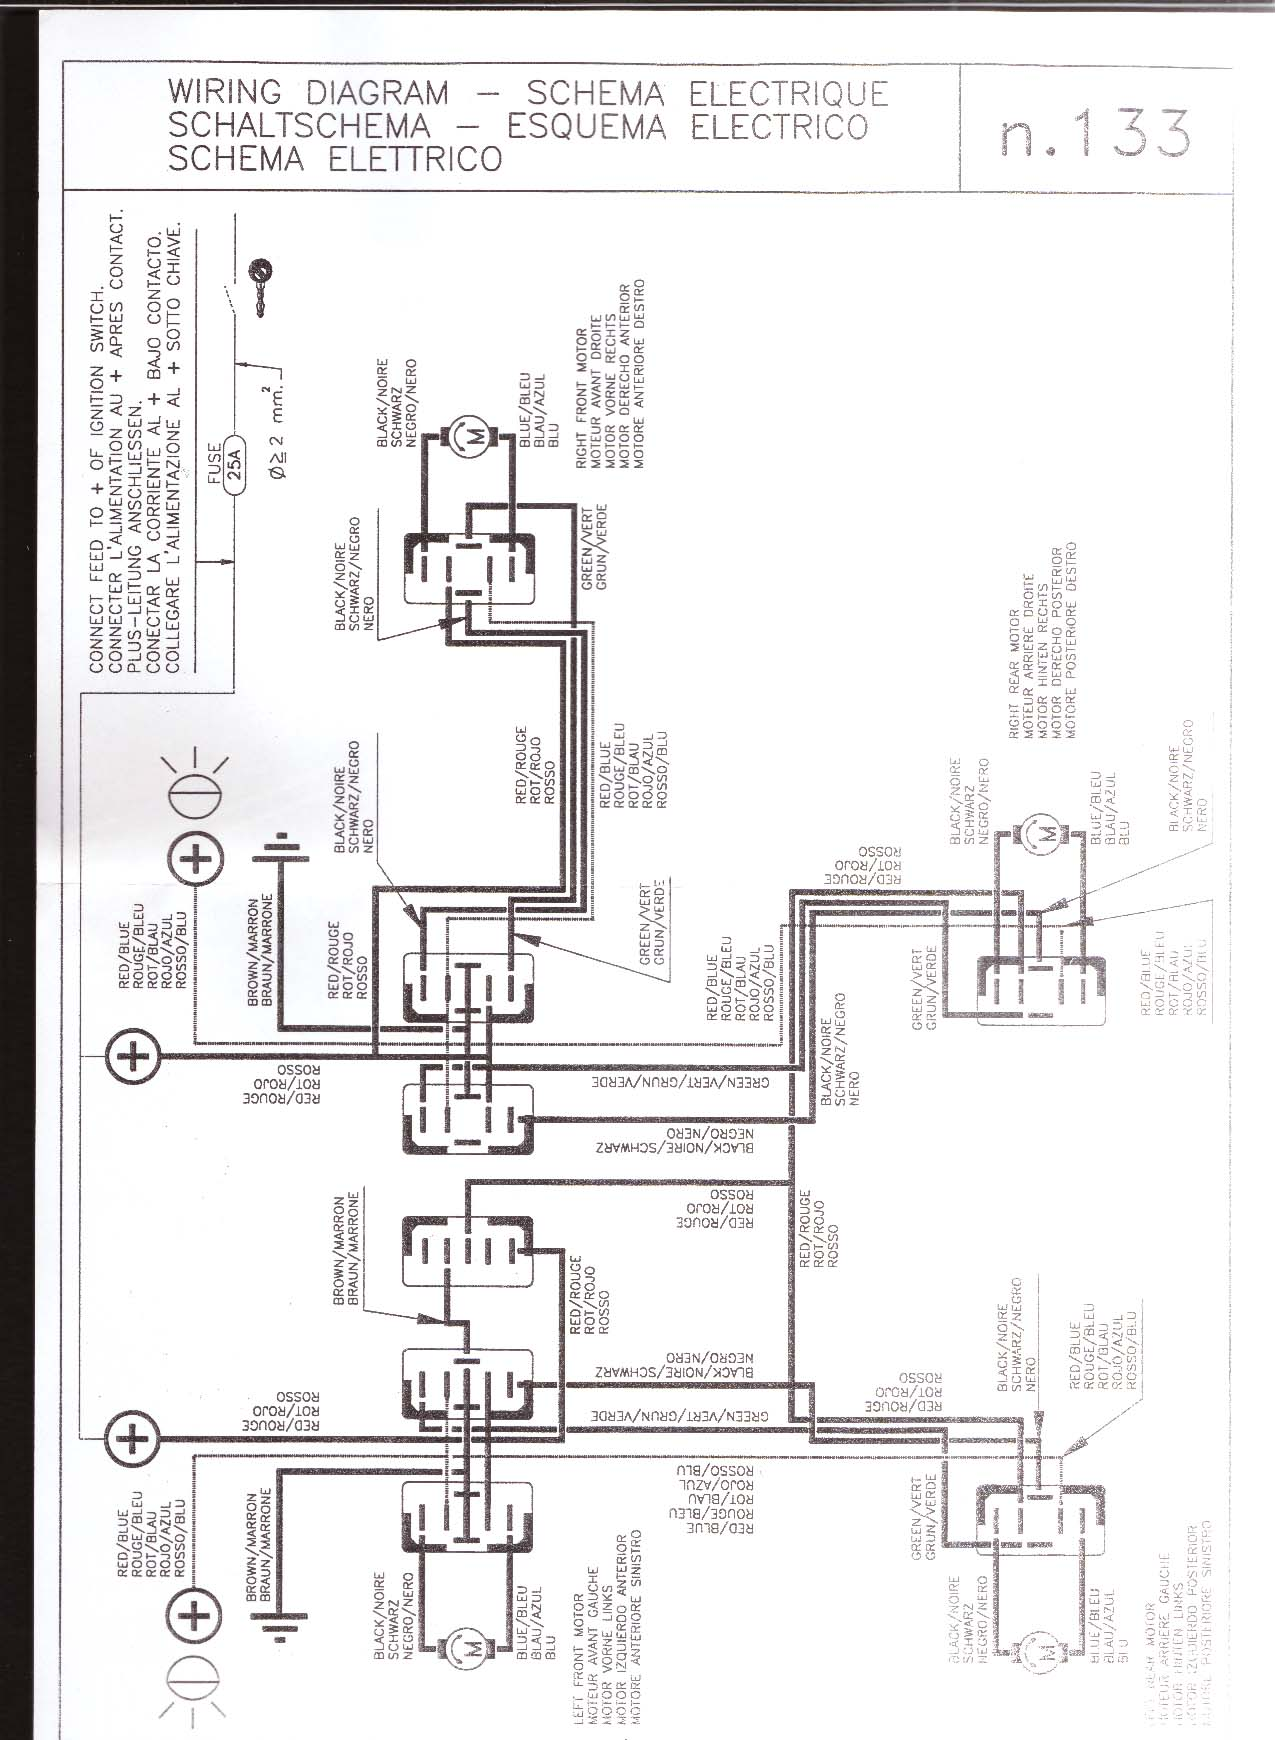 [WRG-2586] 1966 Thunderbird Power Window Wiring Diagram